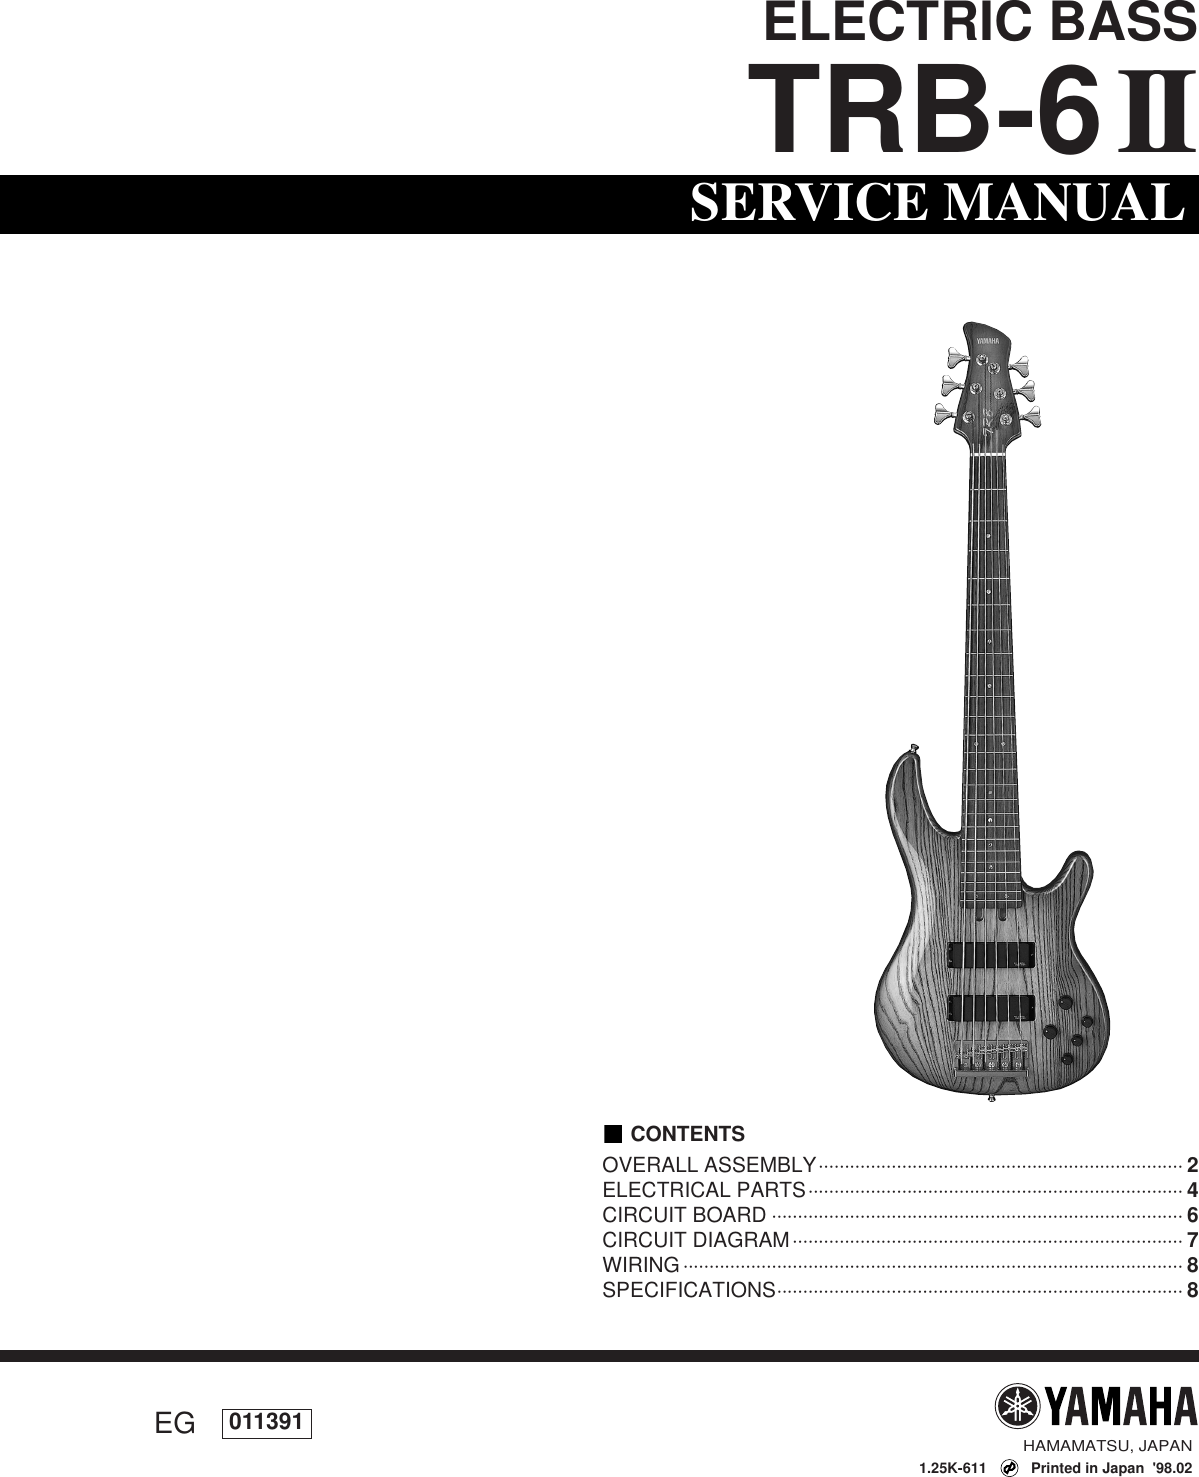 Hohner Bass Guitar Wiring Diagram Library Of Exelent Hofner Collection Electrical And Rh Thetada Com Schematics